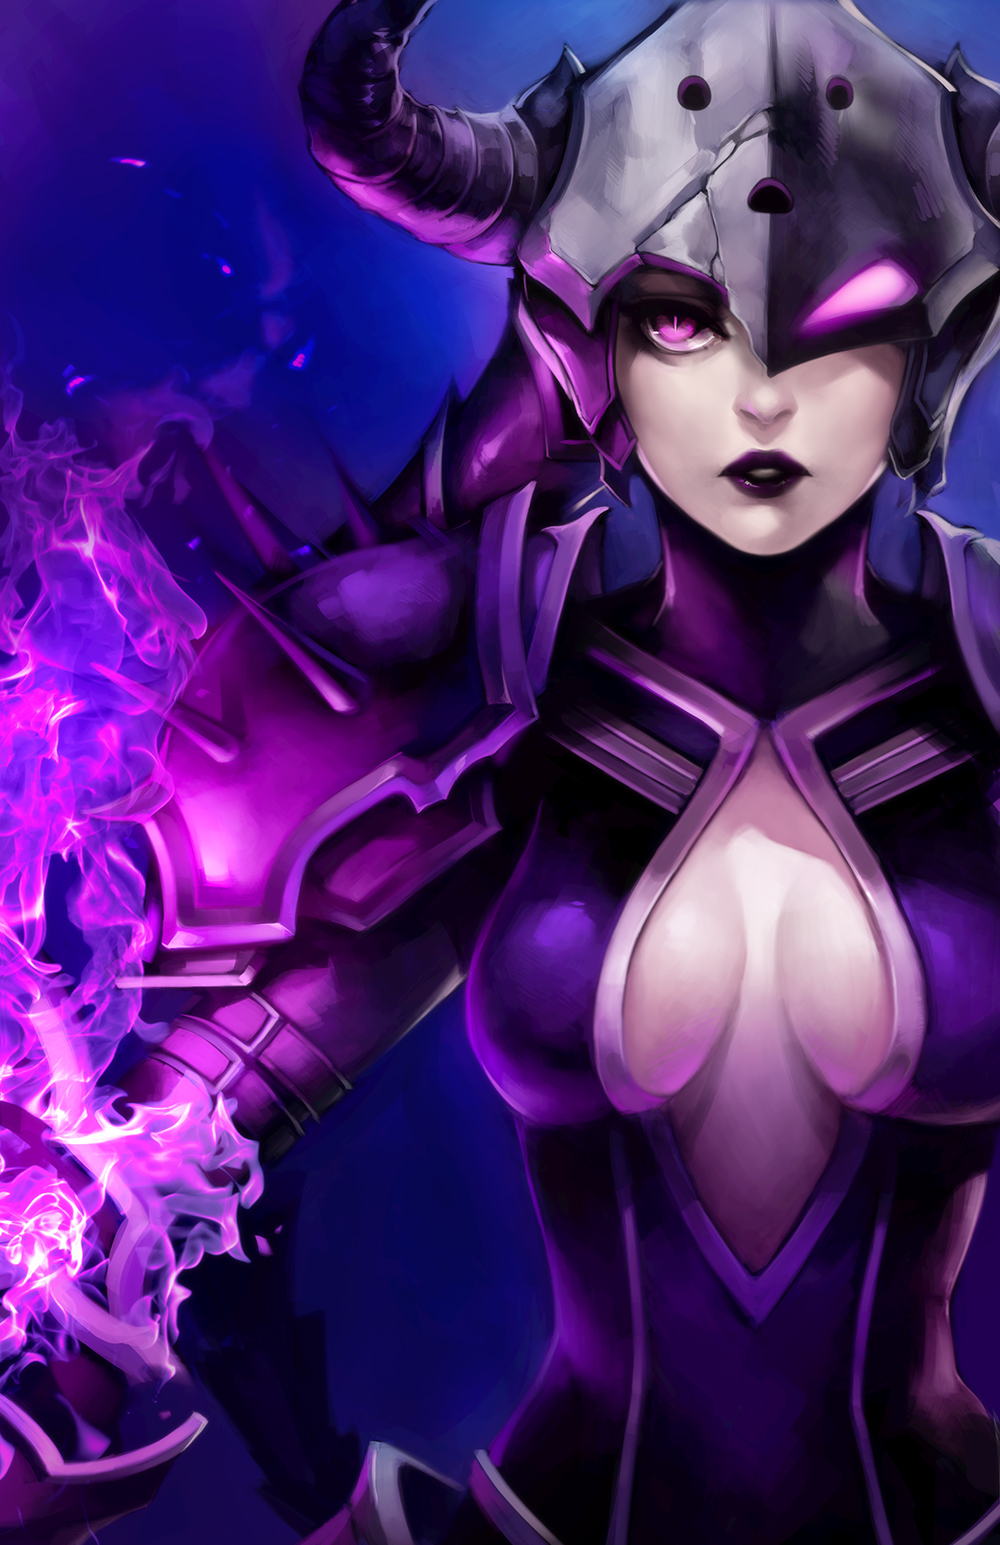 LoL: Darkflame Shyvana by ippus